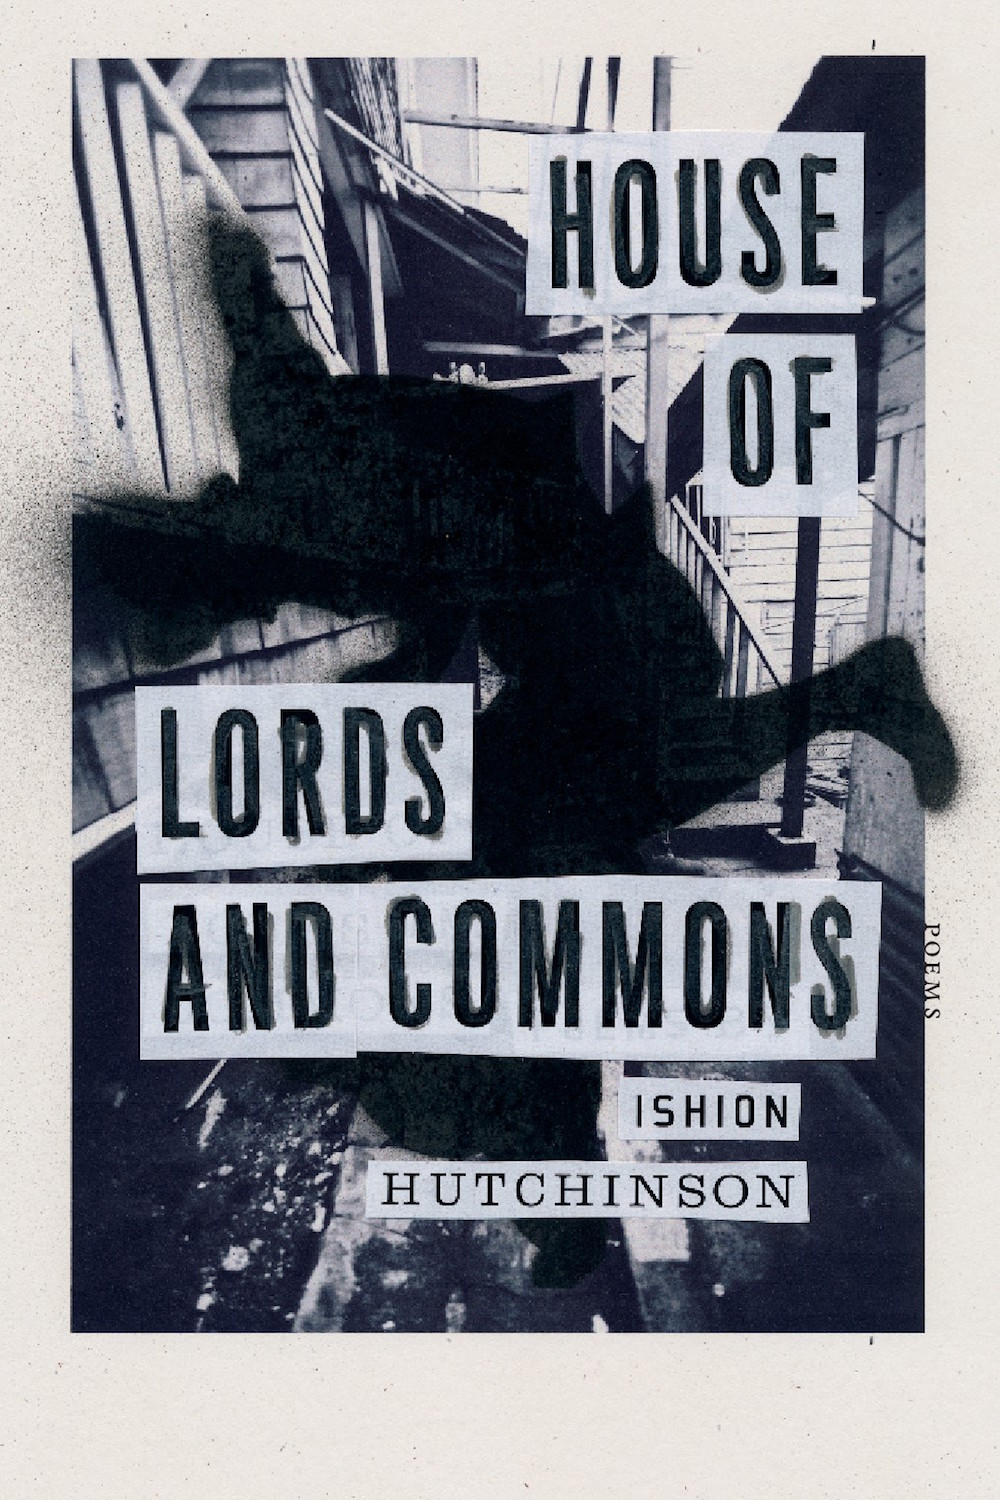 "Another born Jamaican, the poet Ishion Hutchinson, lets his imagination run free in House of Lords and Commons. Exploring the complicated beauty of loving countries with difficult landscapes, he connects the 17th century English Civil War to mythic sea wanderers. He had me with his epigraph: ""Praise the barbarians invading your sleep/ Their exploding horses hurting the snow."""